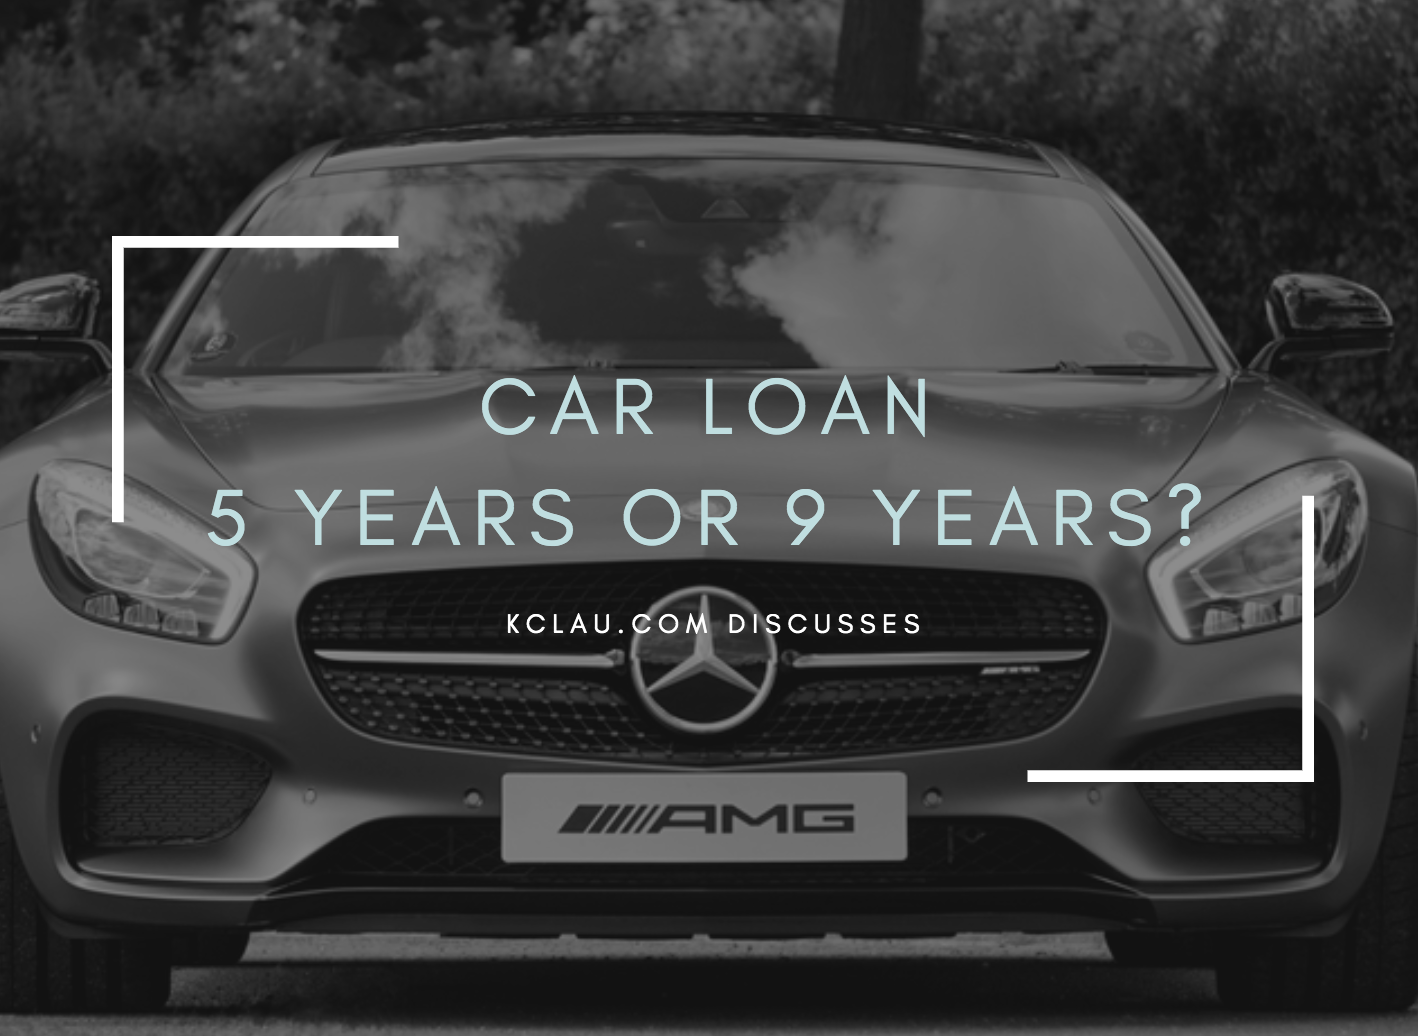 Should I Take a 5-Year Car Loan or a 9-Year Car Loan?